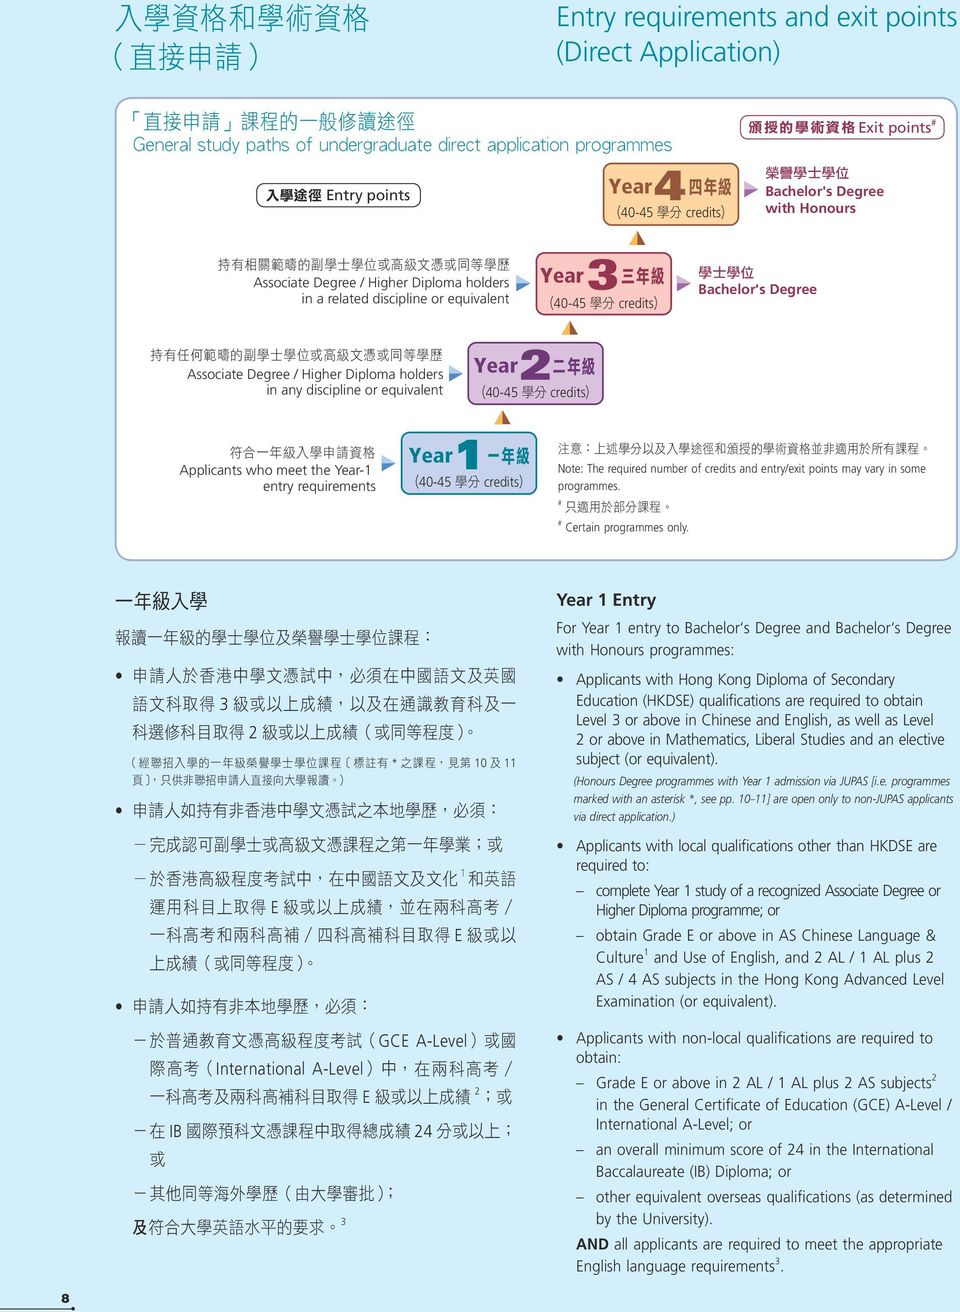 Associate Degree / Higher Diploma holders in any discipline or equivalent Year 2 40-45 credits Applicants who meet the Year-1 entry requirements Year 1 40-45 credits 注 意 : 上 述 學 分 以 及 入 學 途 徑 和 頒 授 的